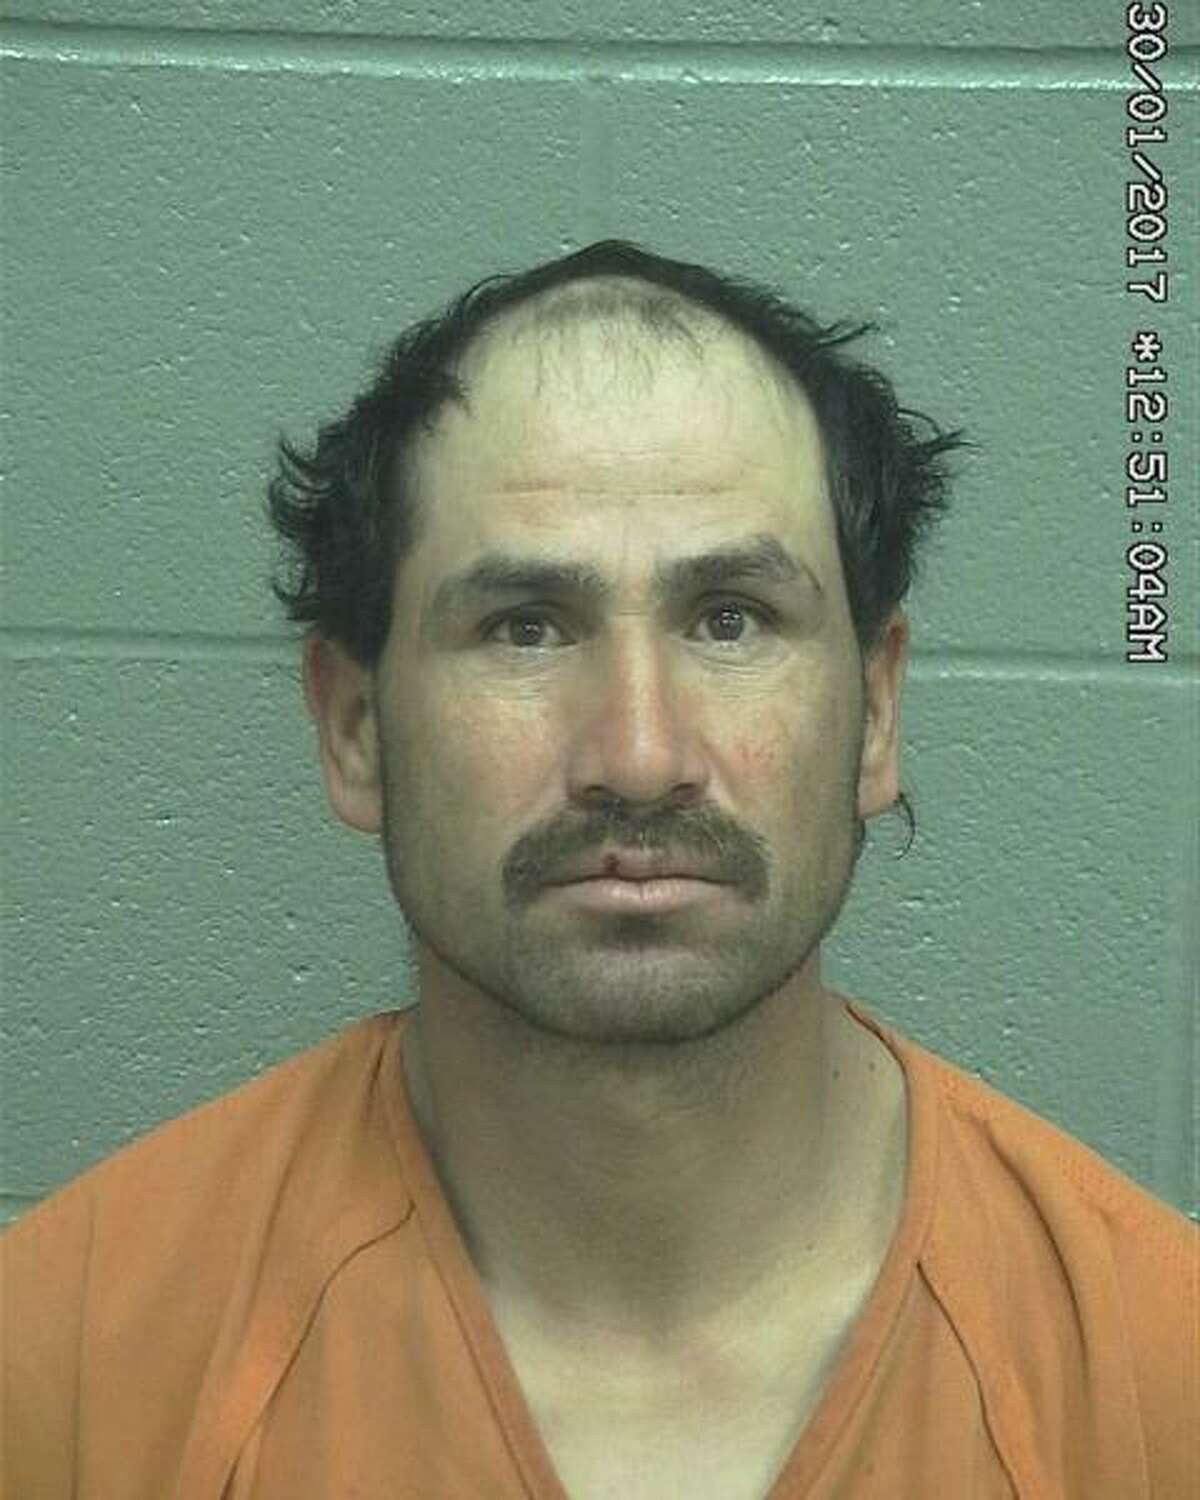 Fernando Zarate-Hernandez, 37, was arrested Saturday after allegedly assaulting two people, according to court documents.